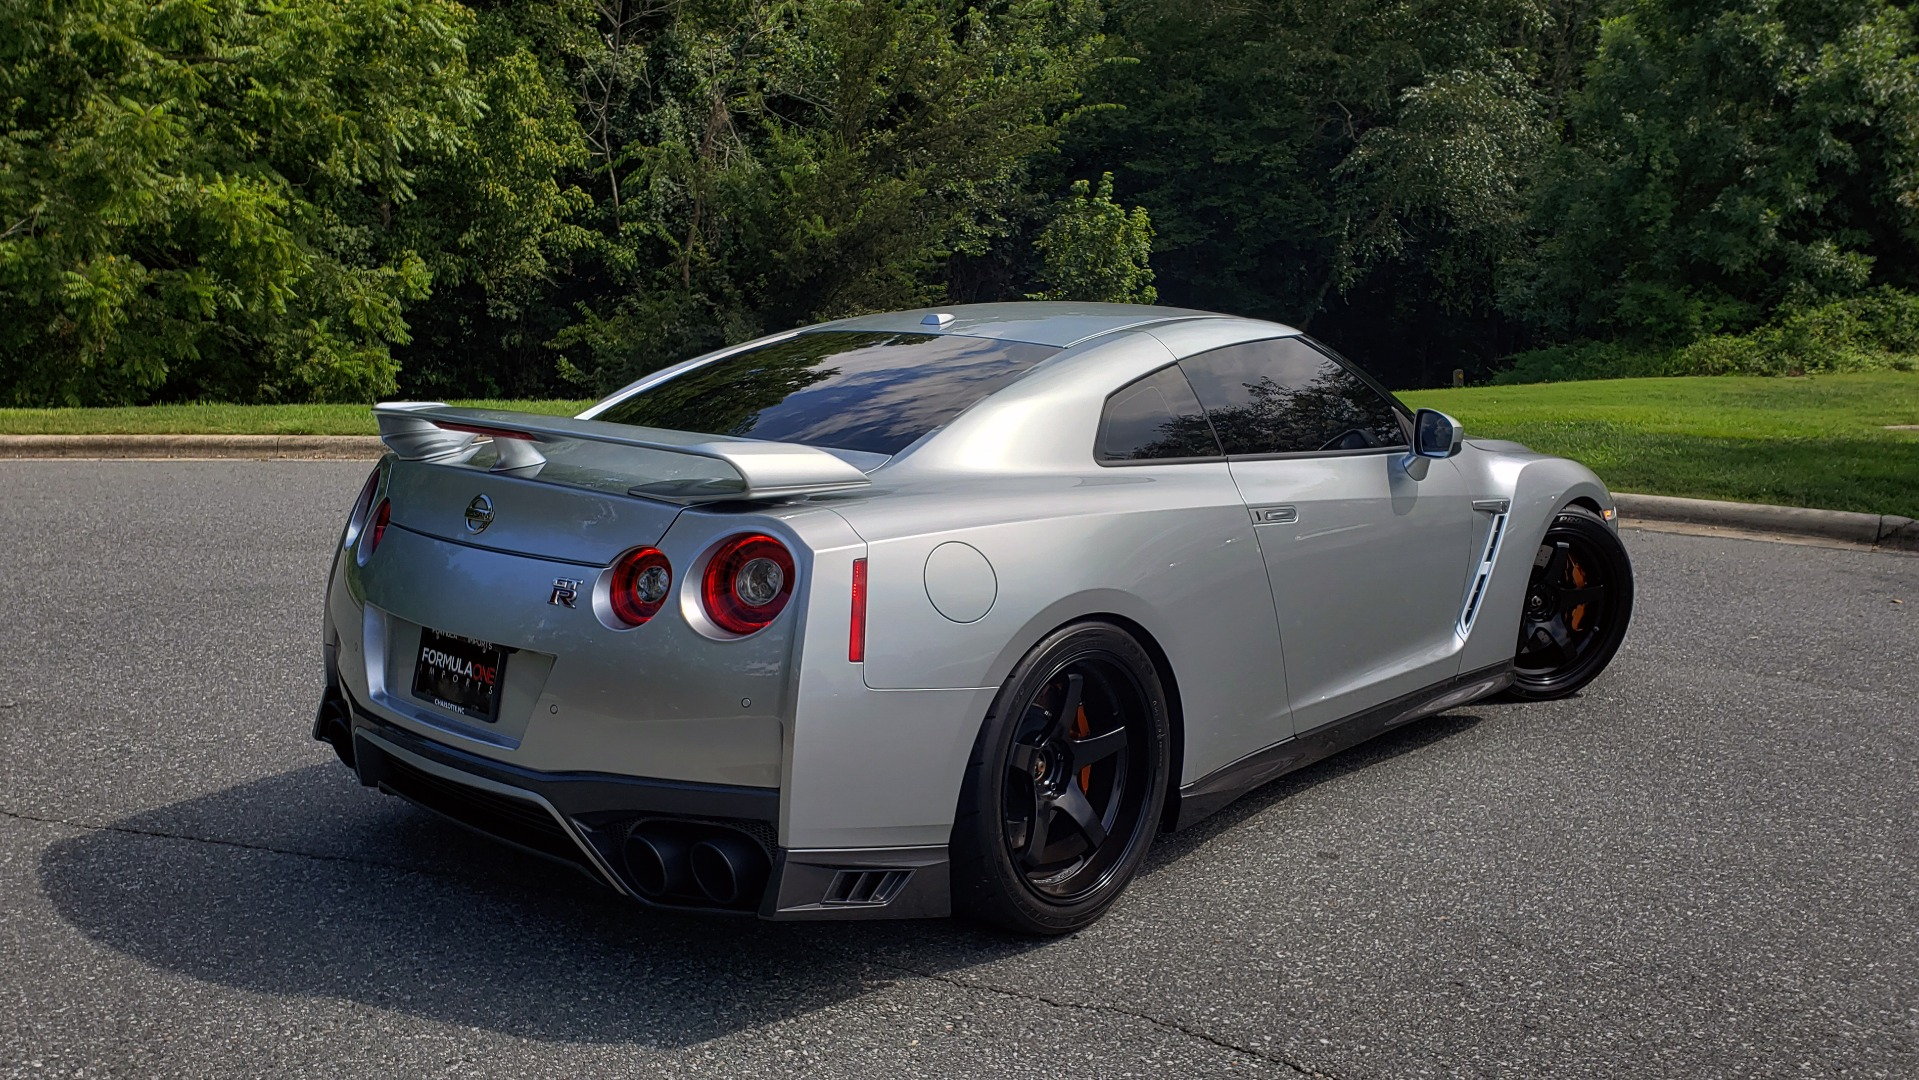 Used 2018 Nissan GT-R PREMIUM / NAV / BOSE / REARVIEW / CUSTOM WHEELS / COIL OVER SHOCKS / TUNED for sale Sold at Formula Imports in Charlotte NC 28227 11